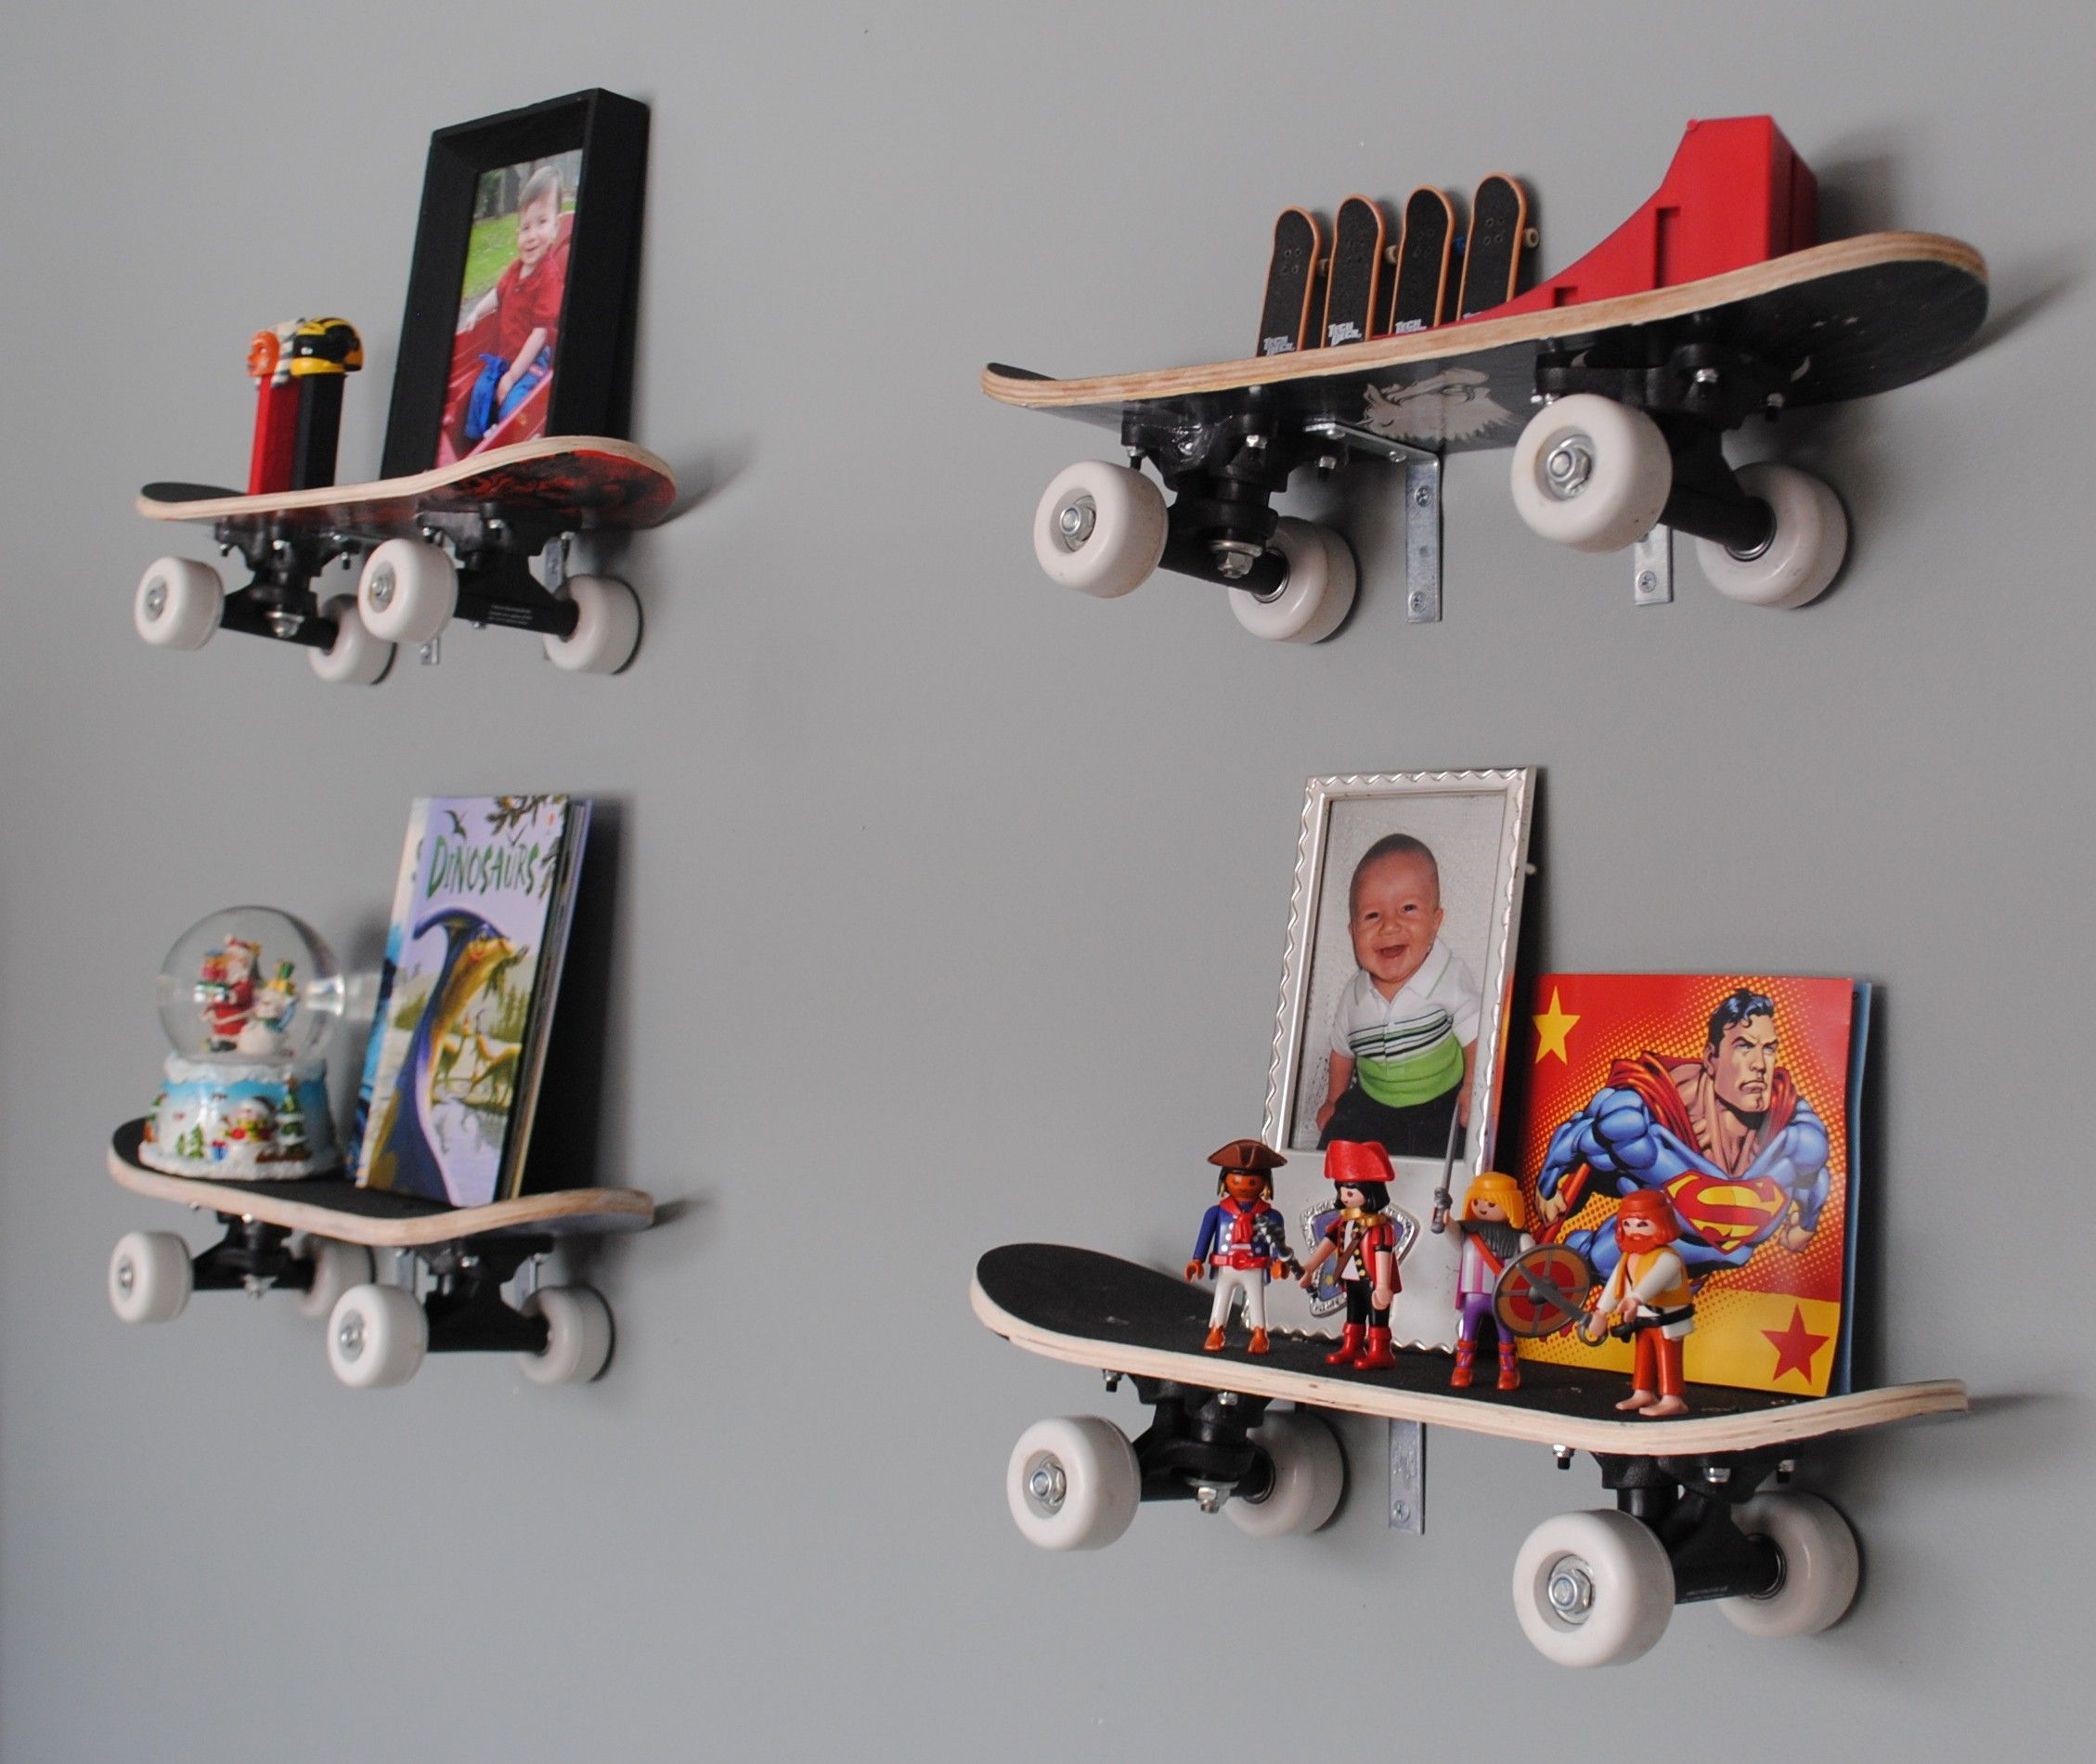 Skateboard Bedroom cool kids boy bedroom decorating ideas featuring awesome unique